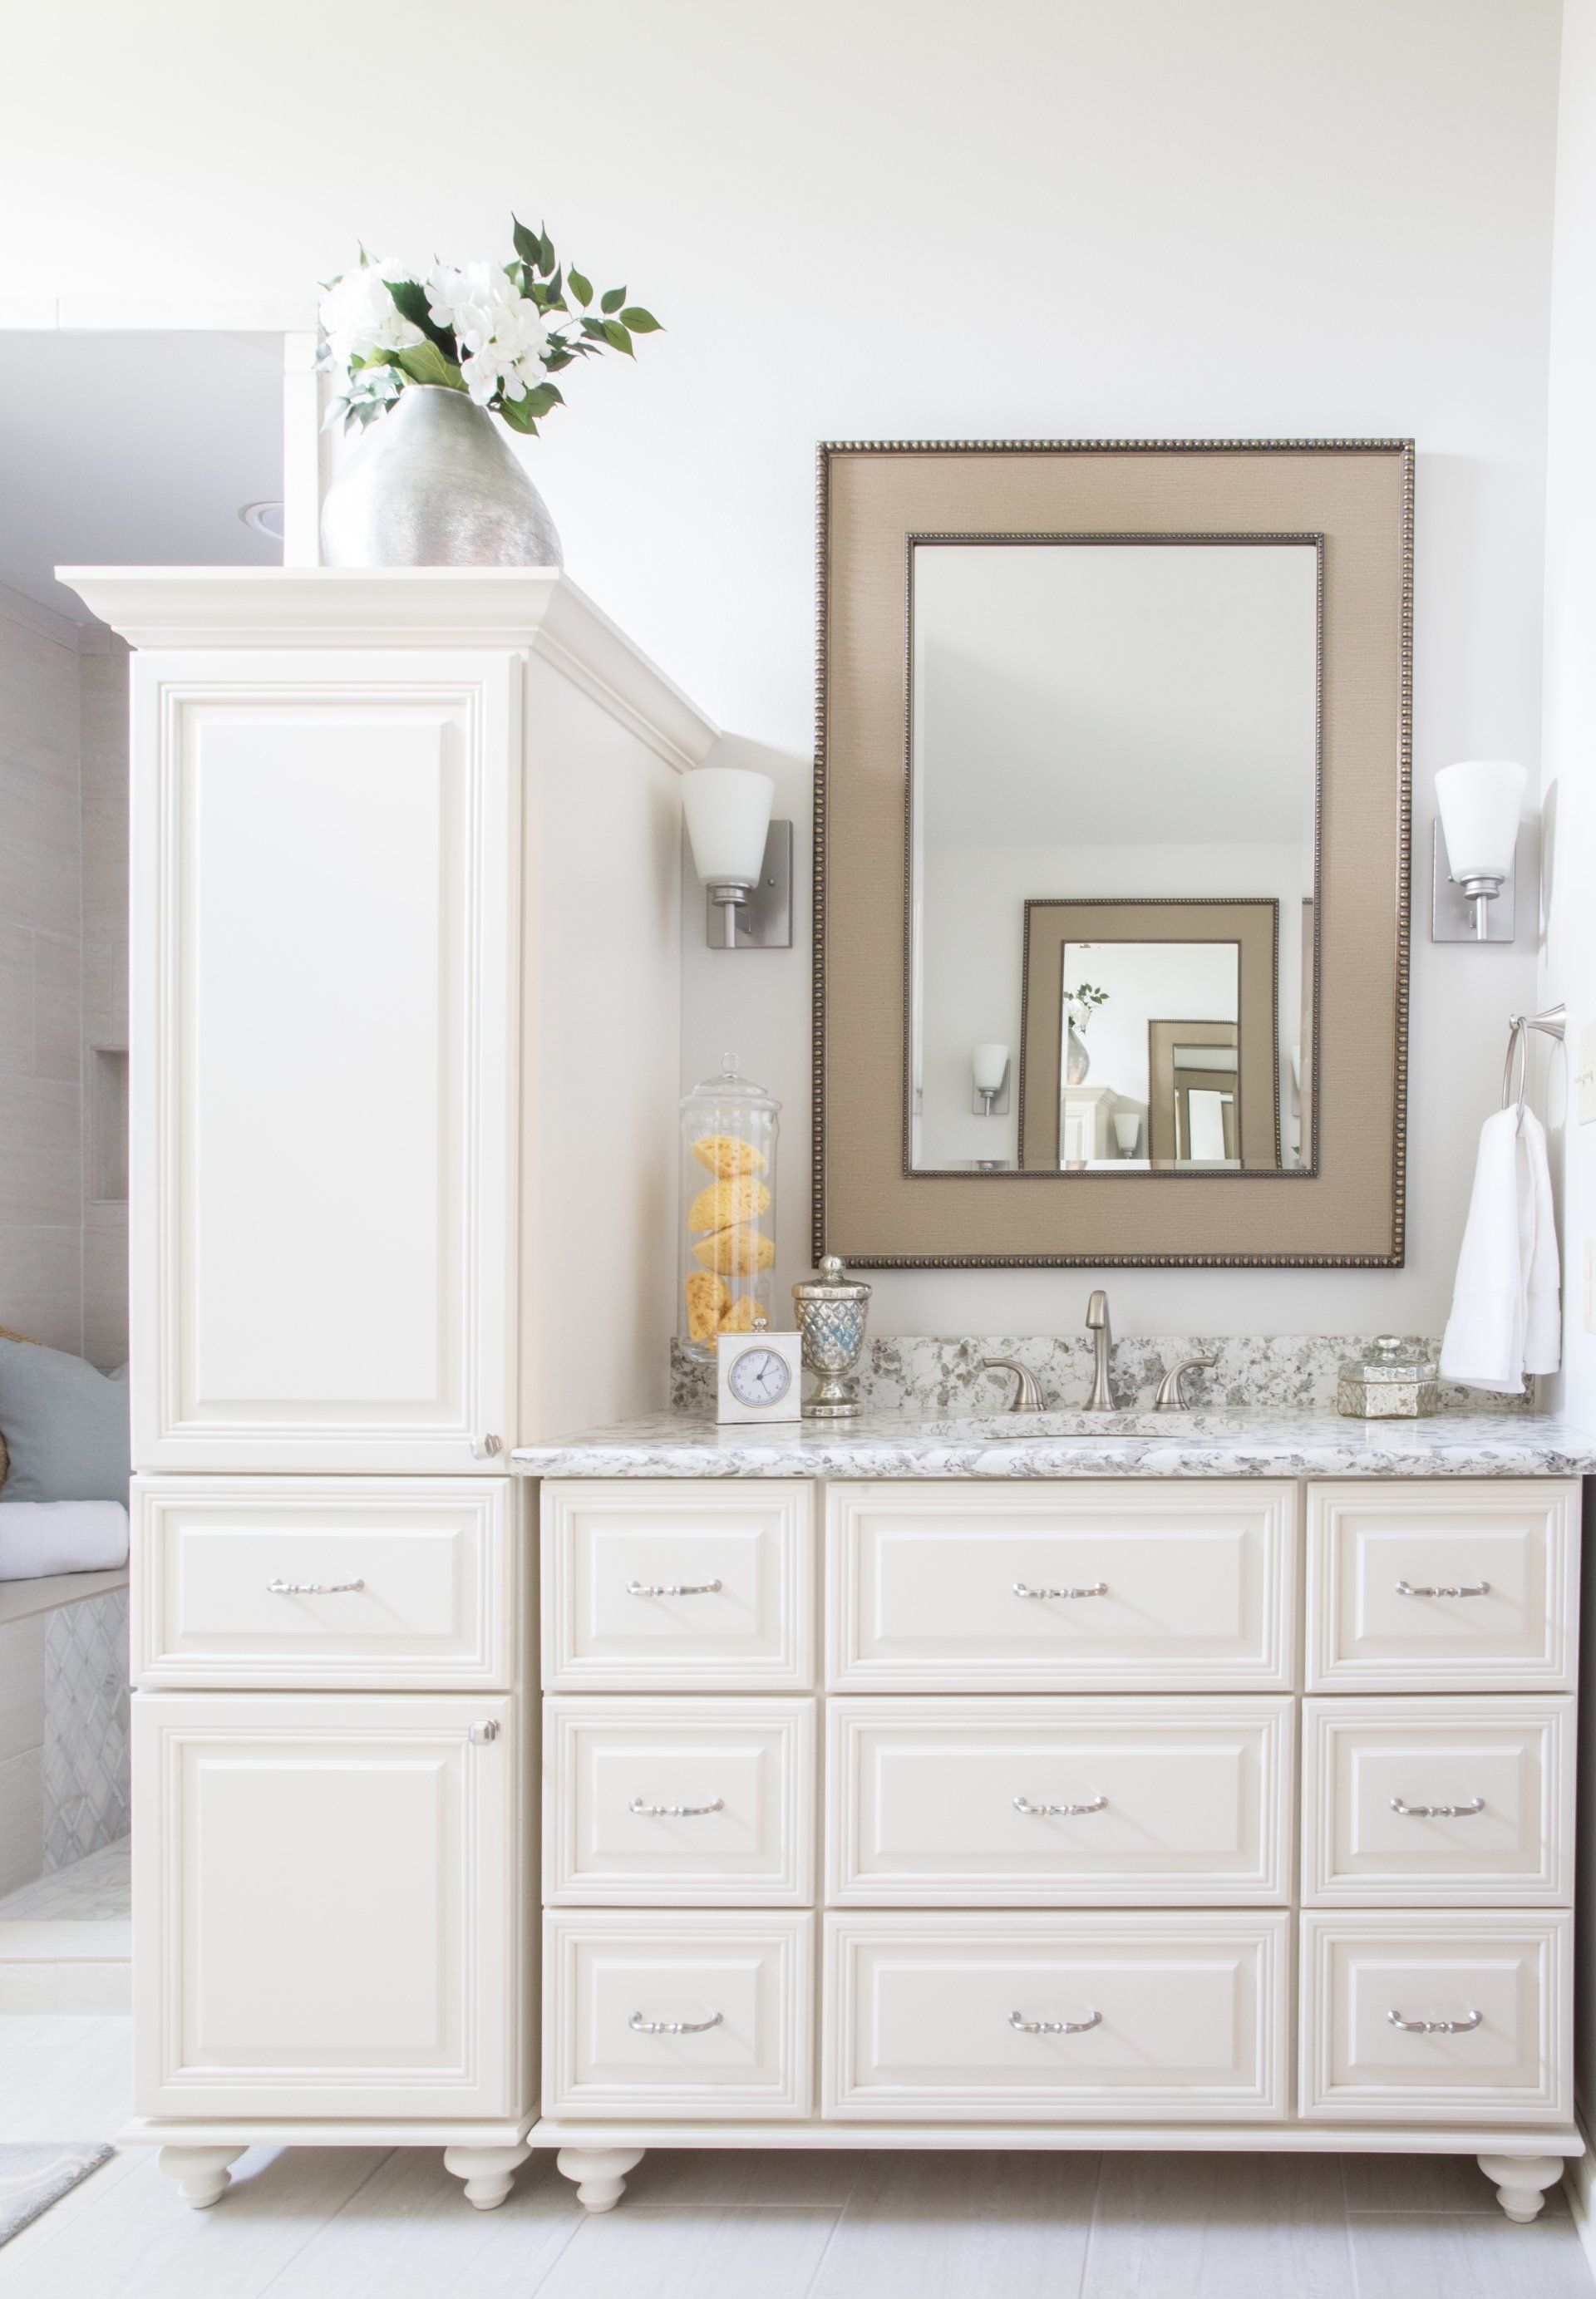 Transitional Bathrooms Baton Rouge | Transitional Homes ...